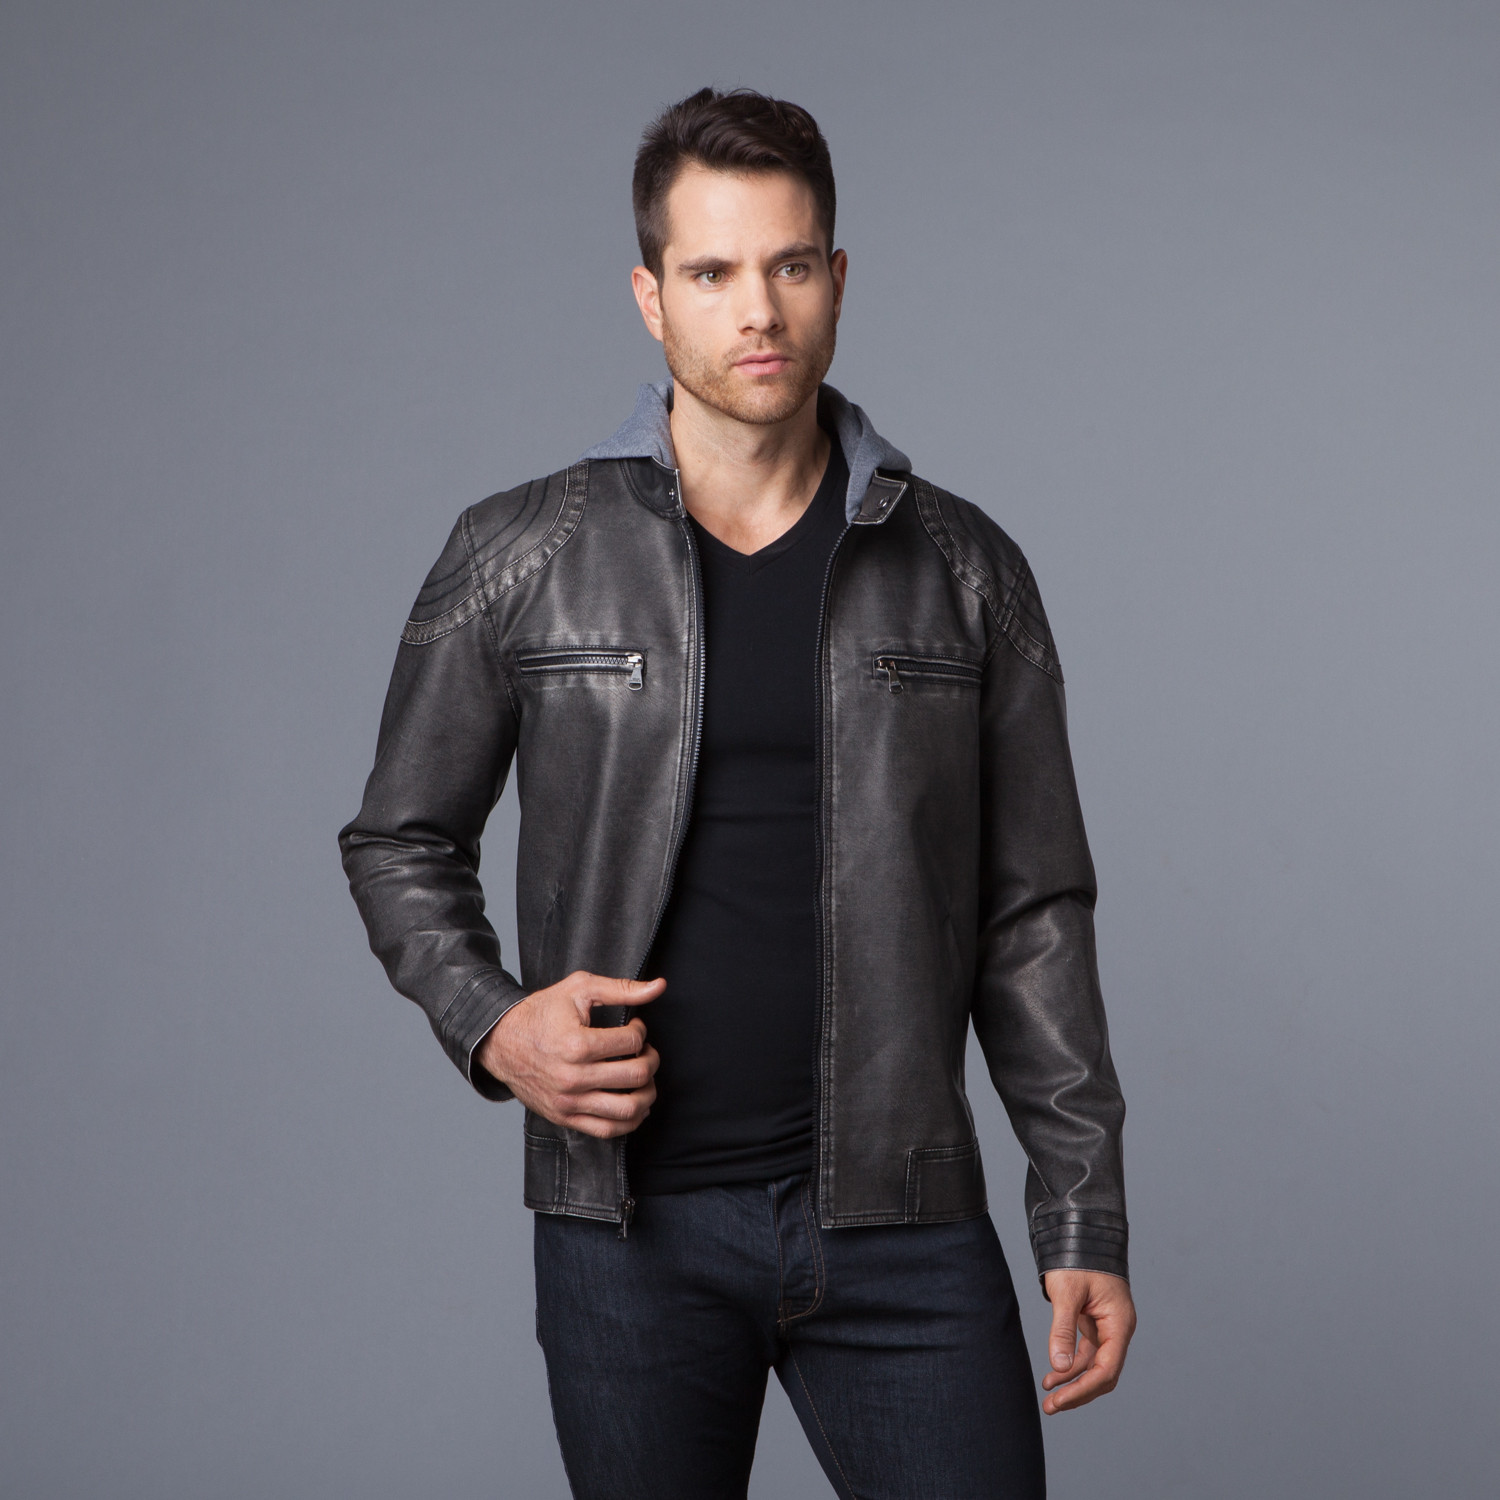 Two-Tone Leather Jacket   Fleece Hood // Black (S) - Urban ...